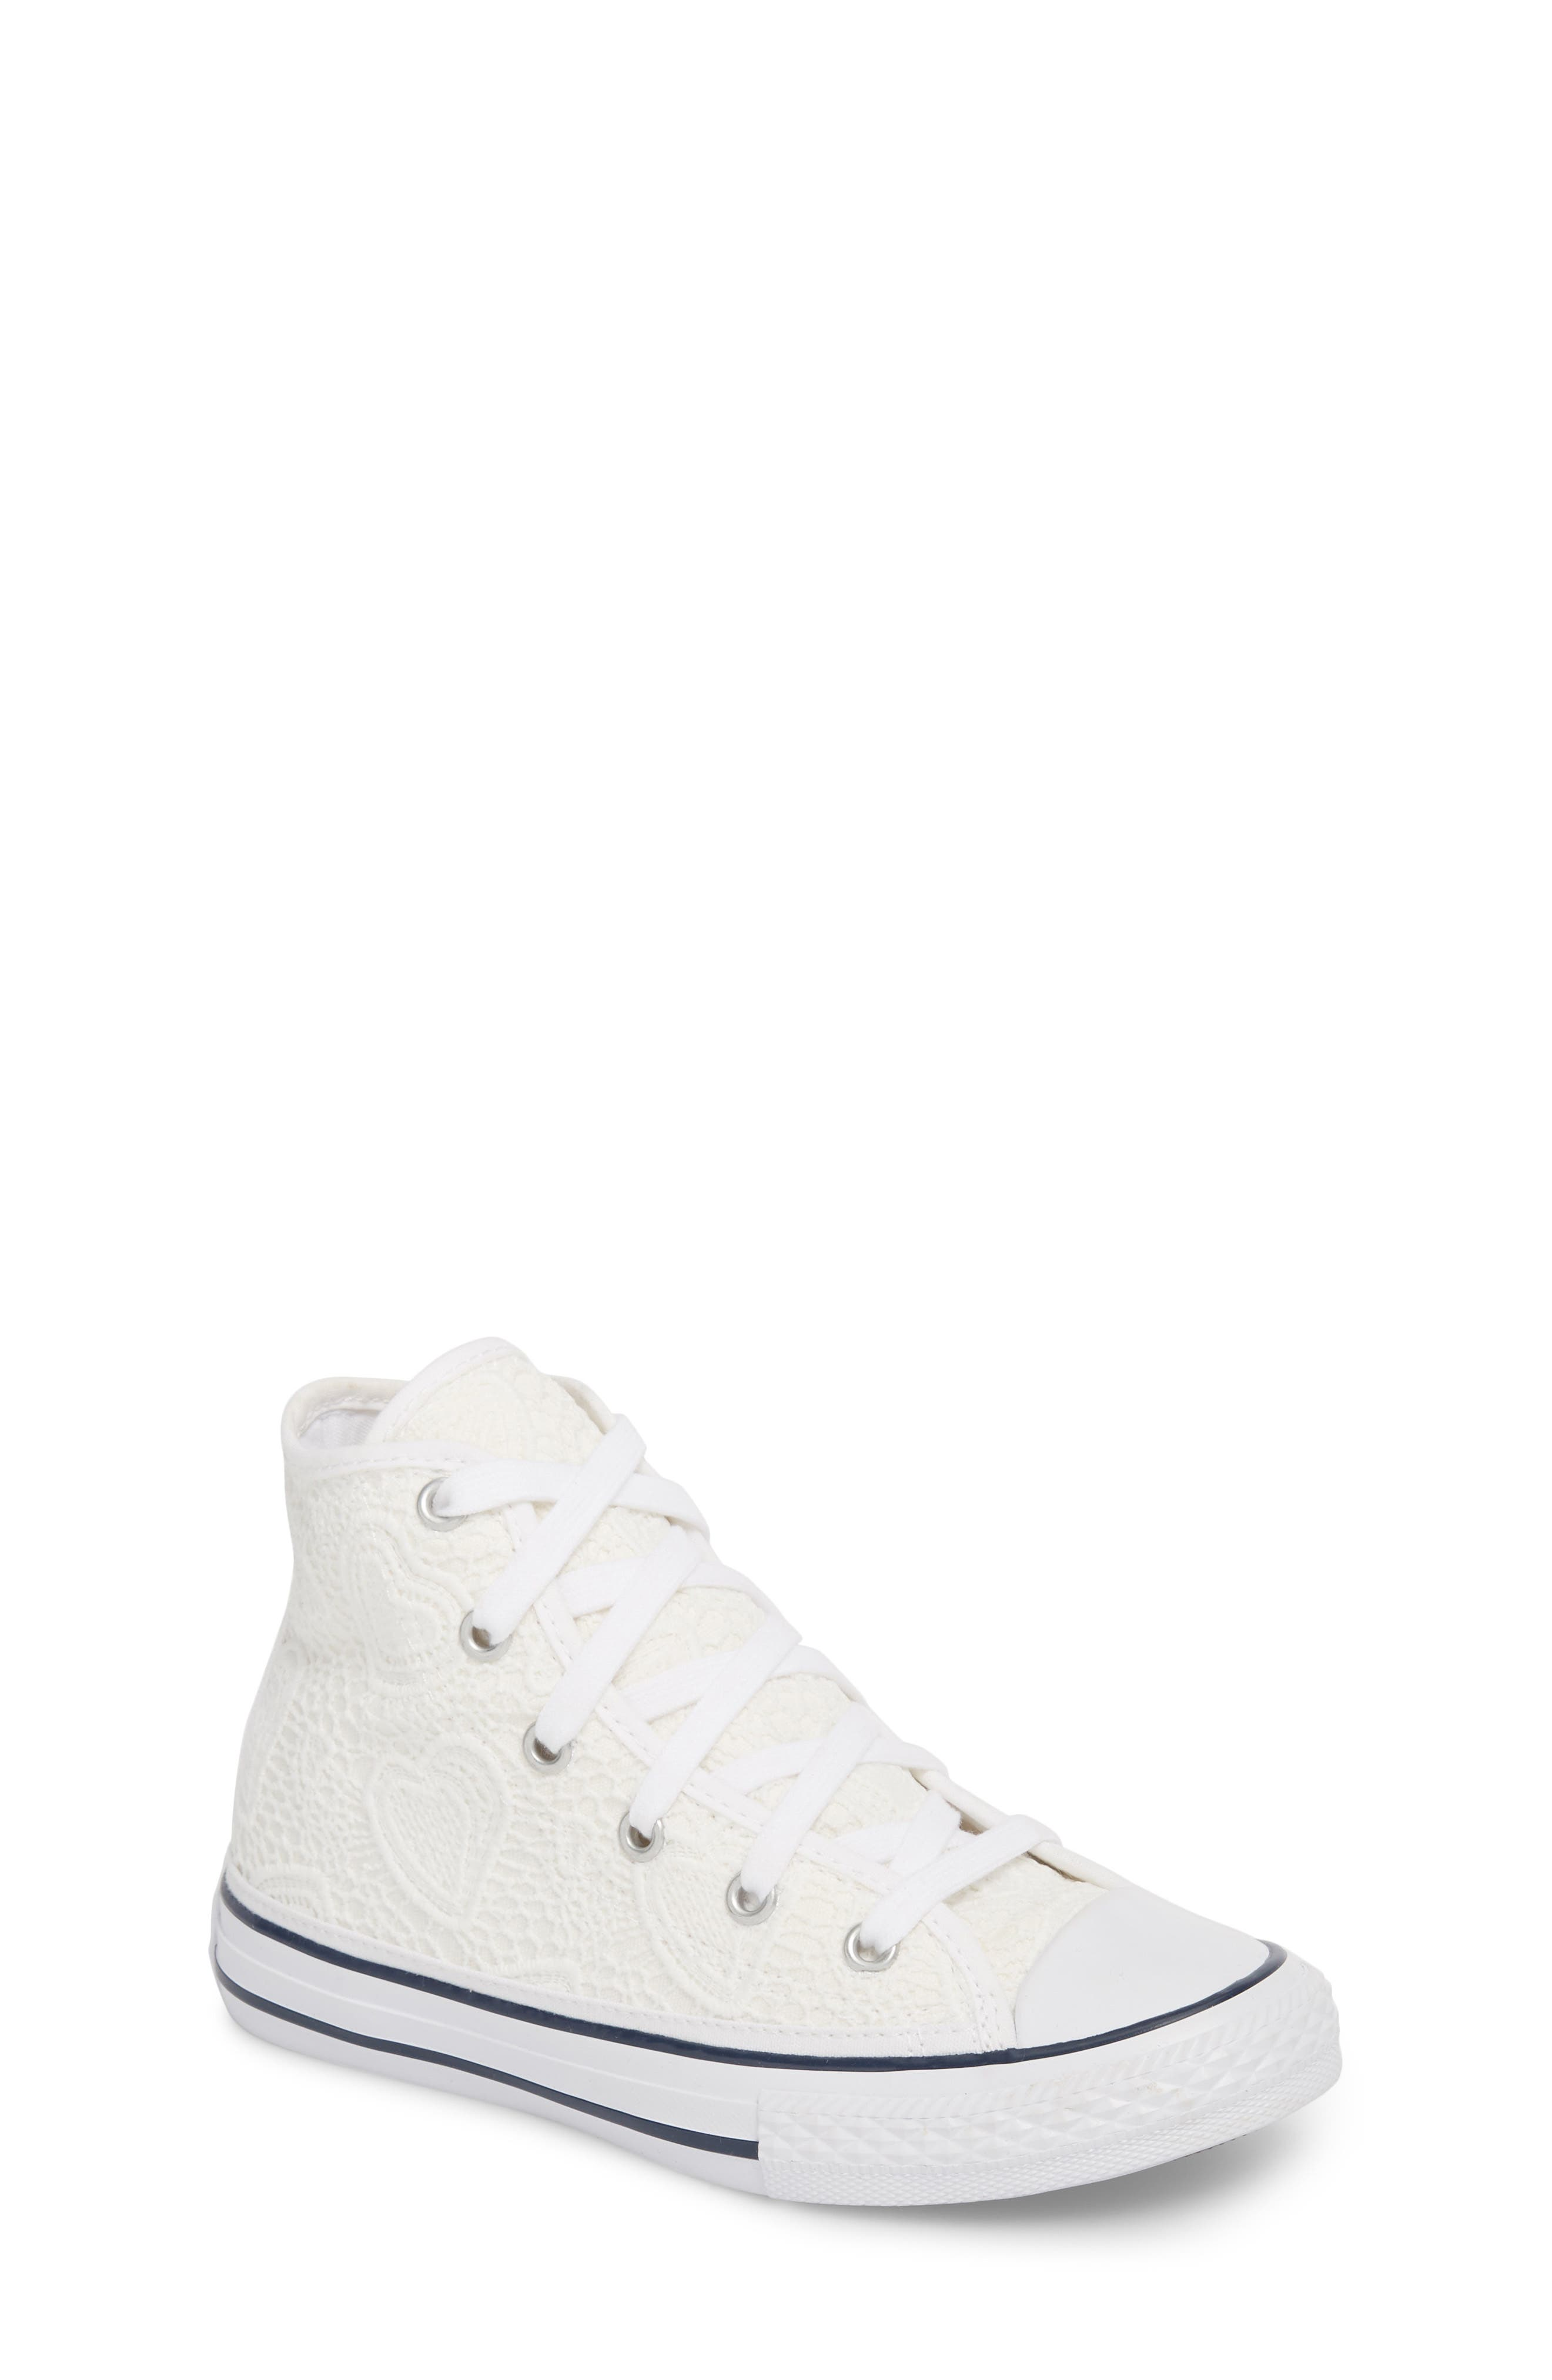 Chuck Taylor<sup>®</sup> All Star<sup>®</sup> Crochet High Top Sneaker,                         Main,                         color, 102